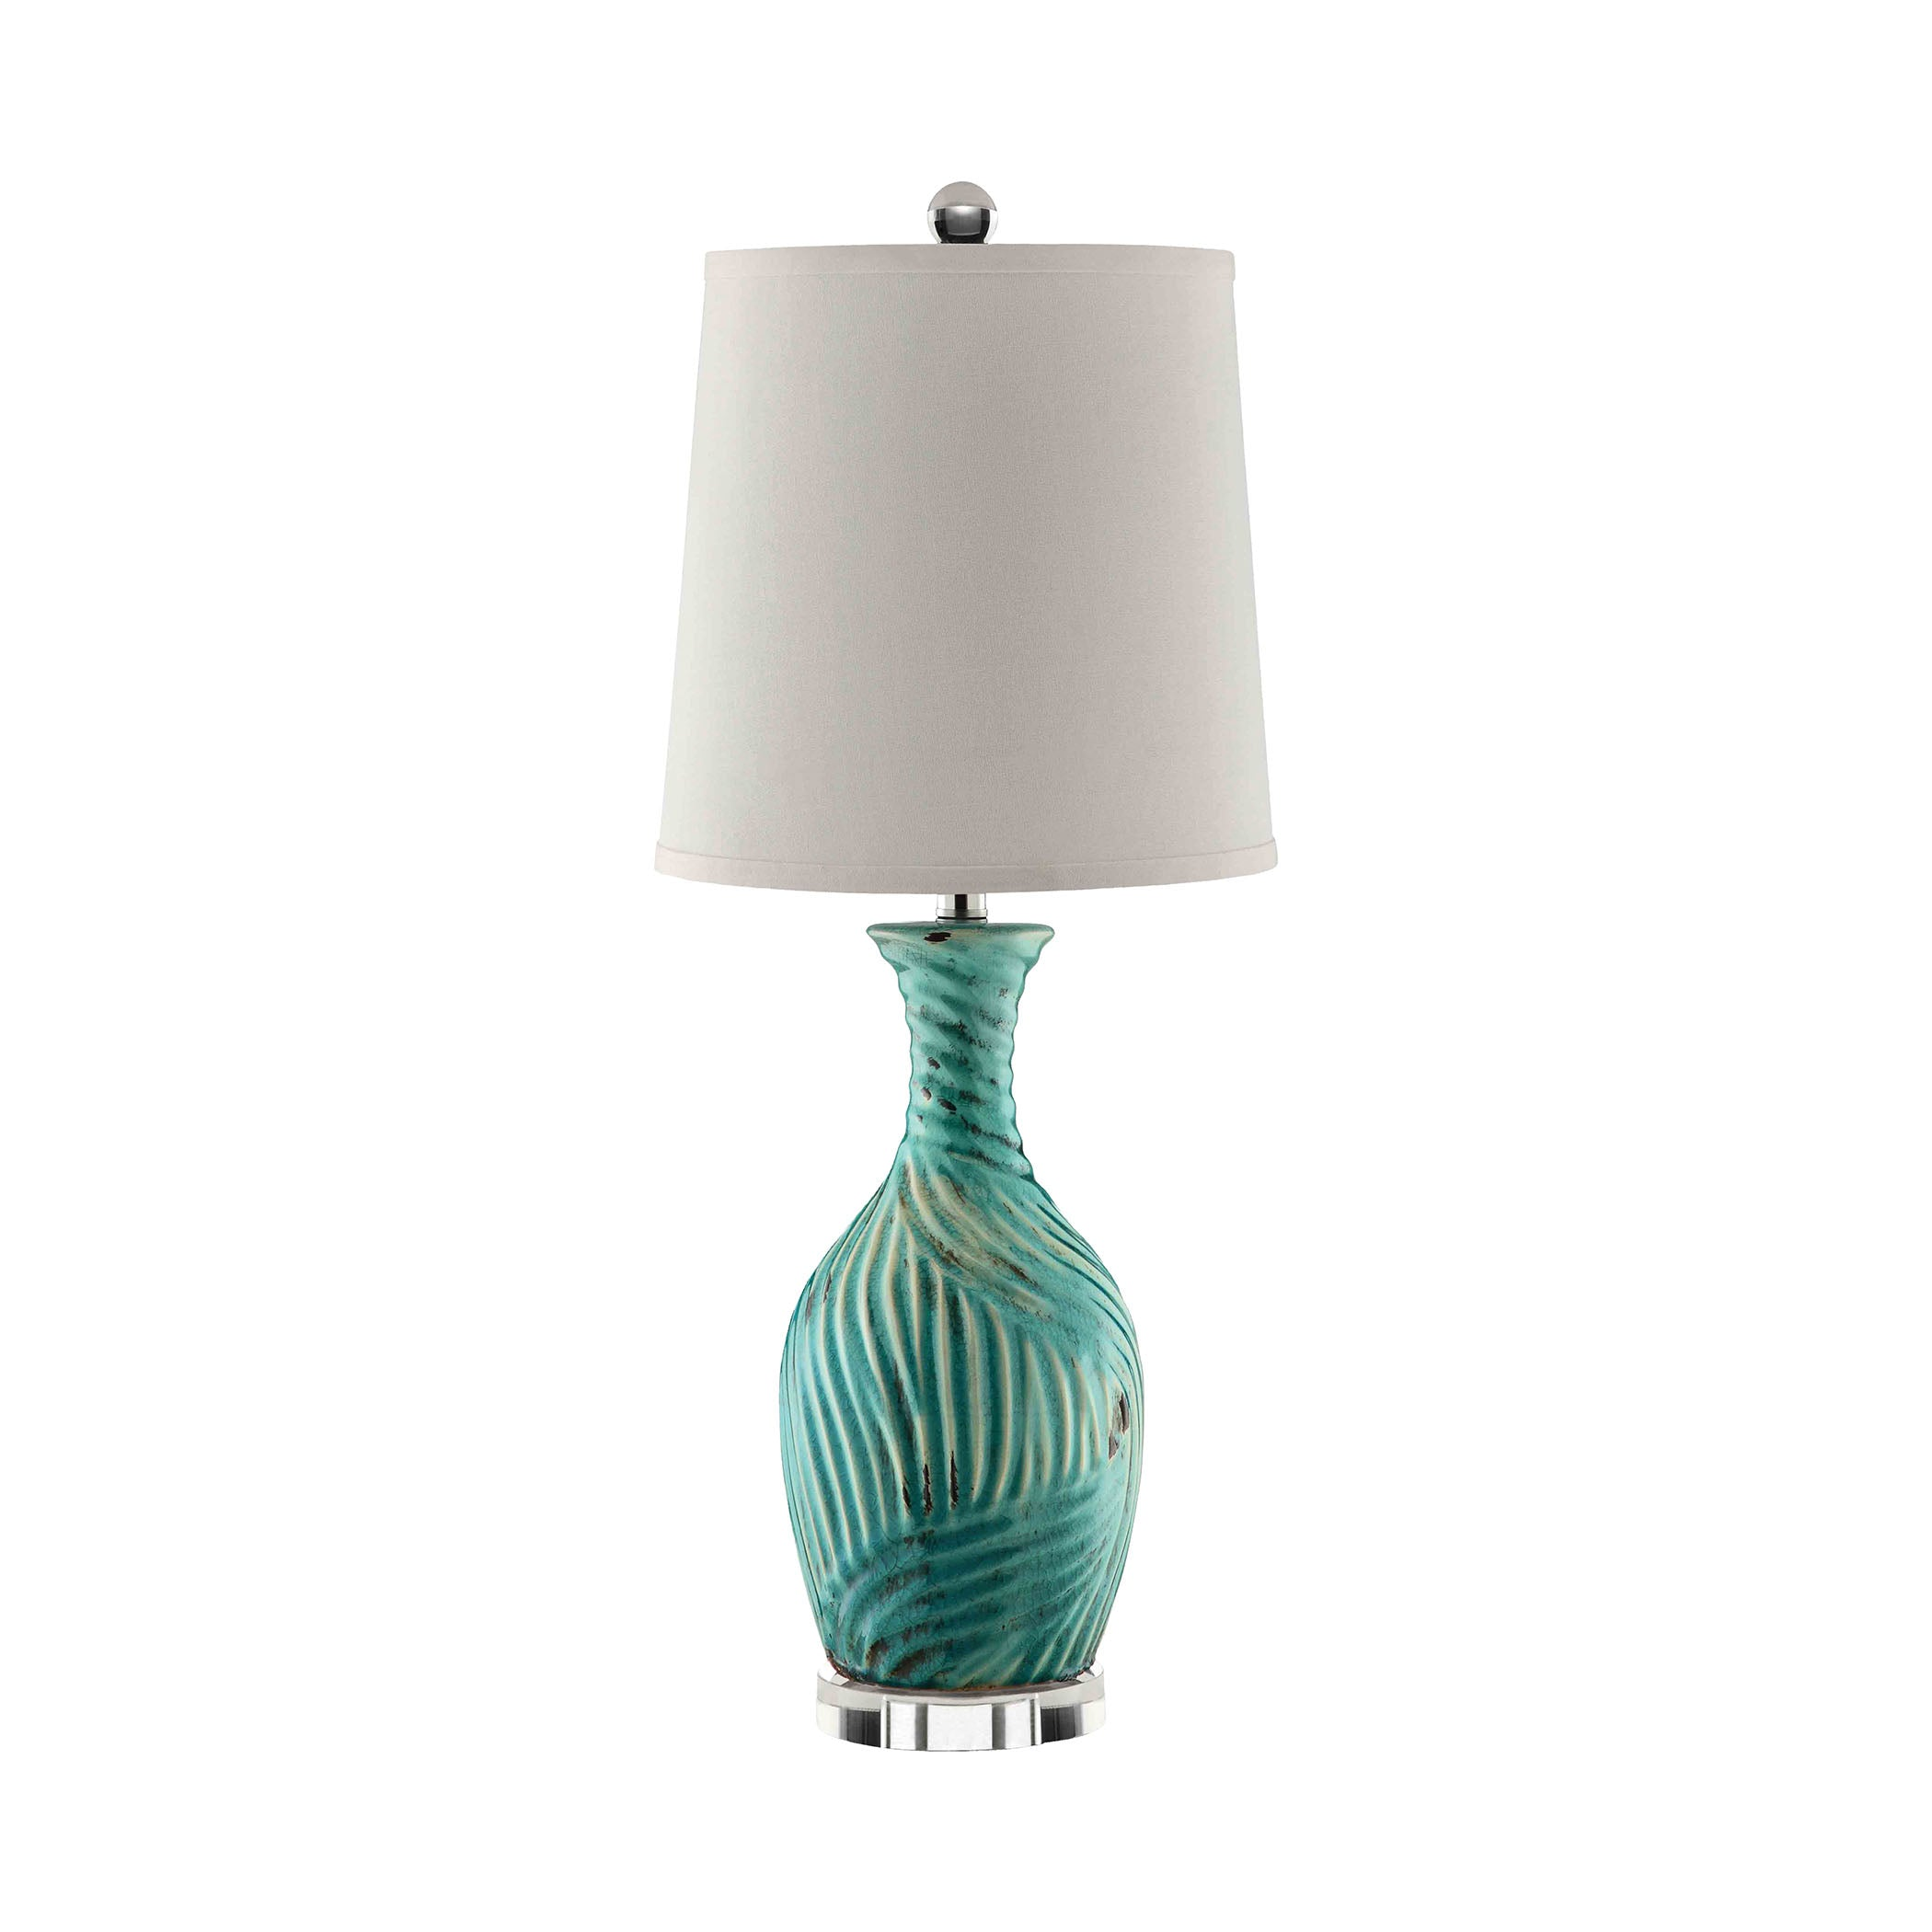 Stein World Ormesby Table Lamp